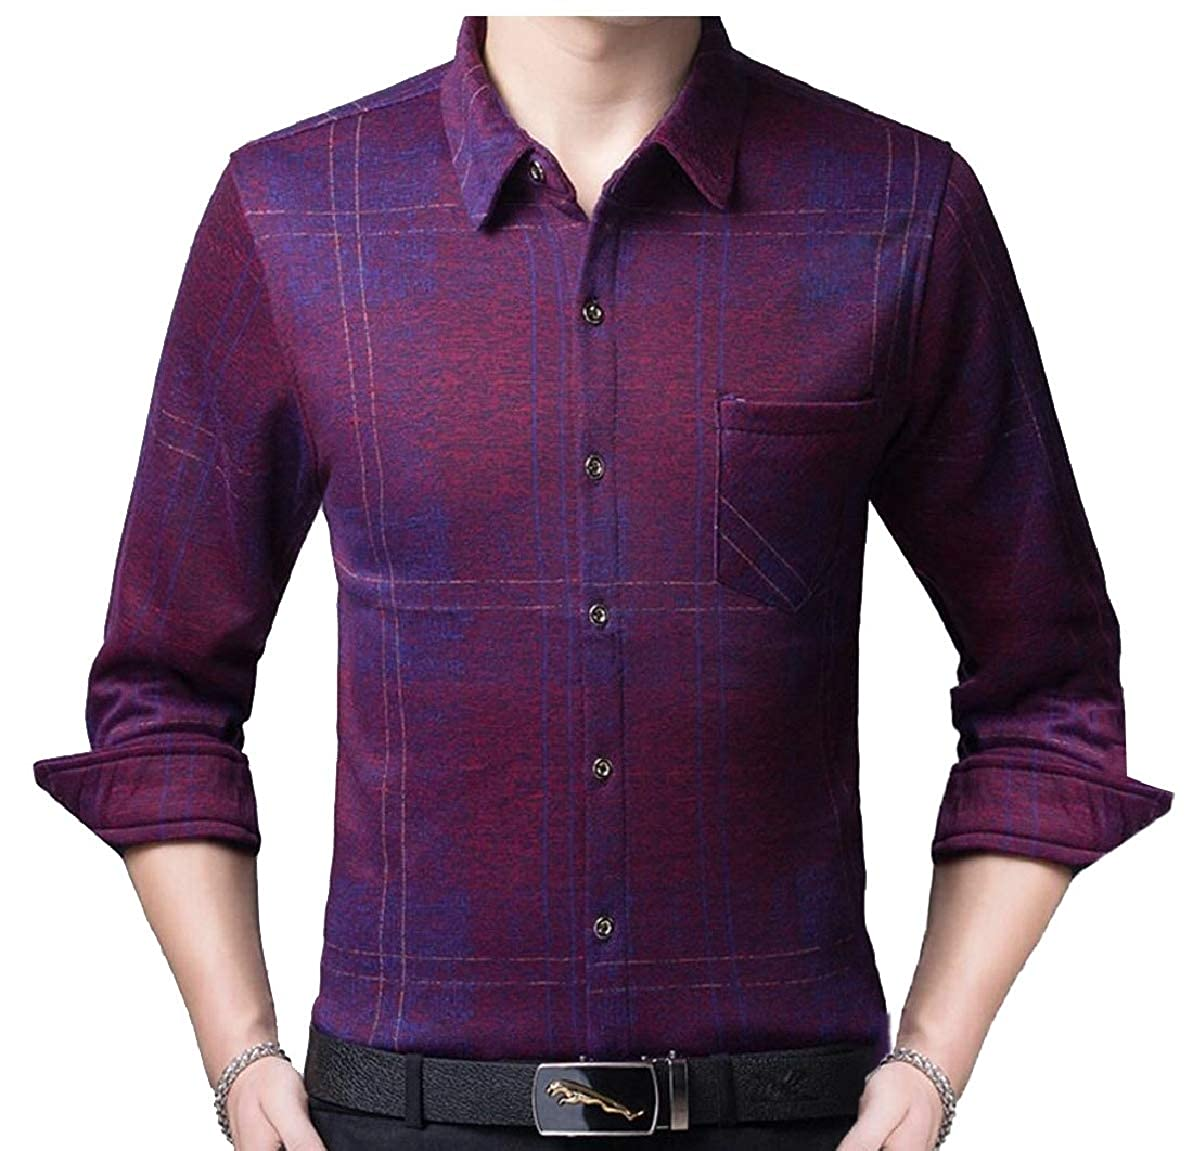 FLCH+YIGE Mens Slim Fit Thicken Button Down Fashion Fleece Lined Dress Shirts